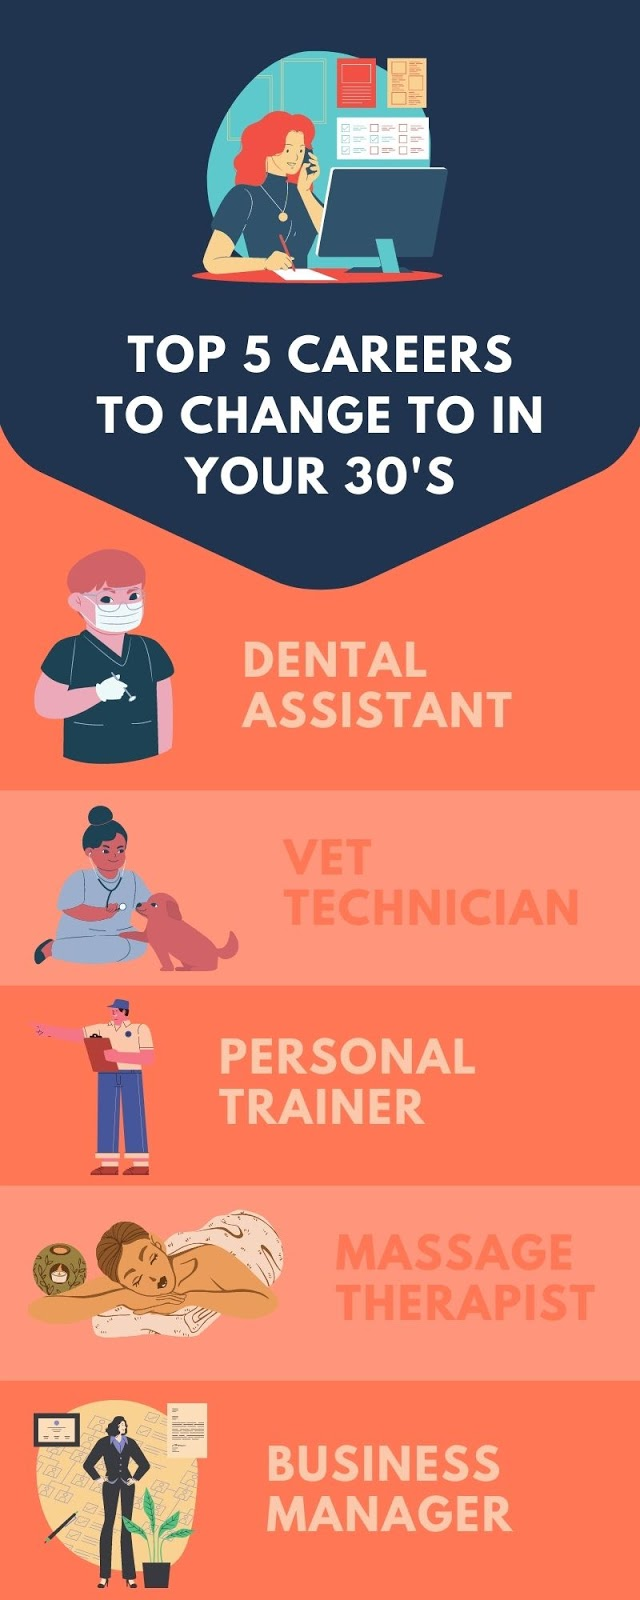 Career changes in your 30s infographic